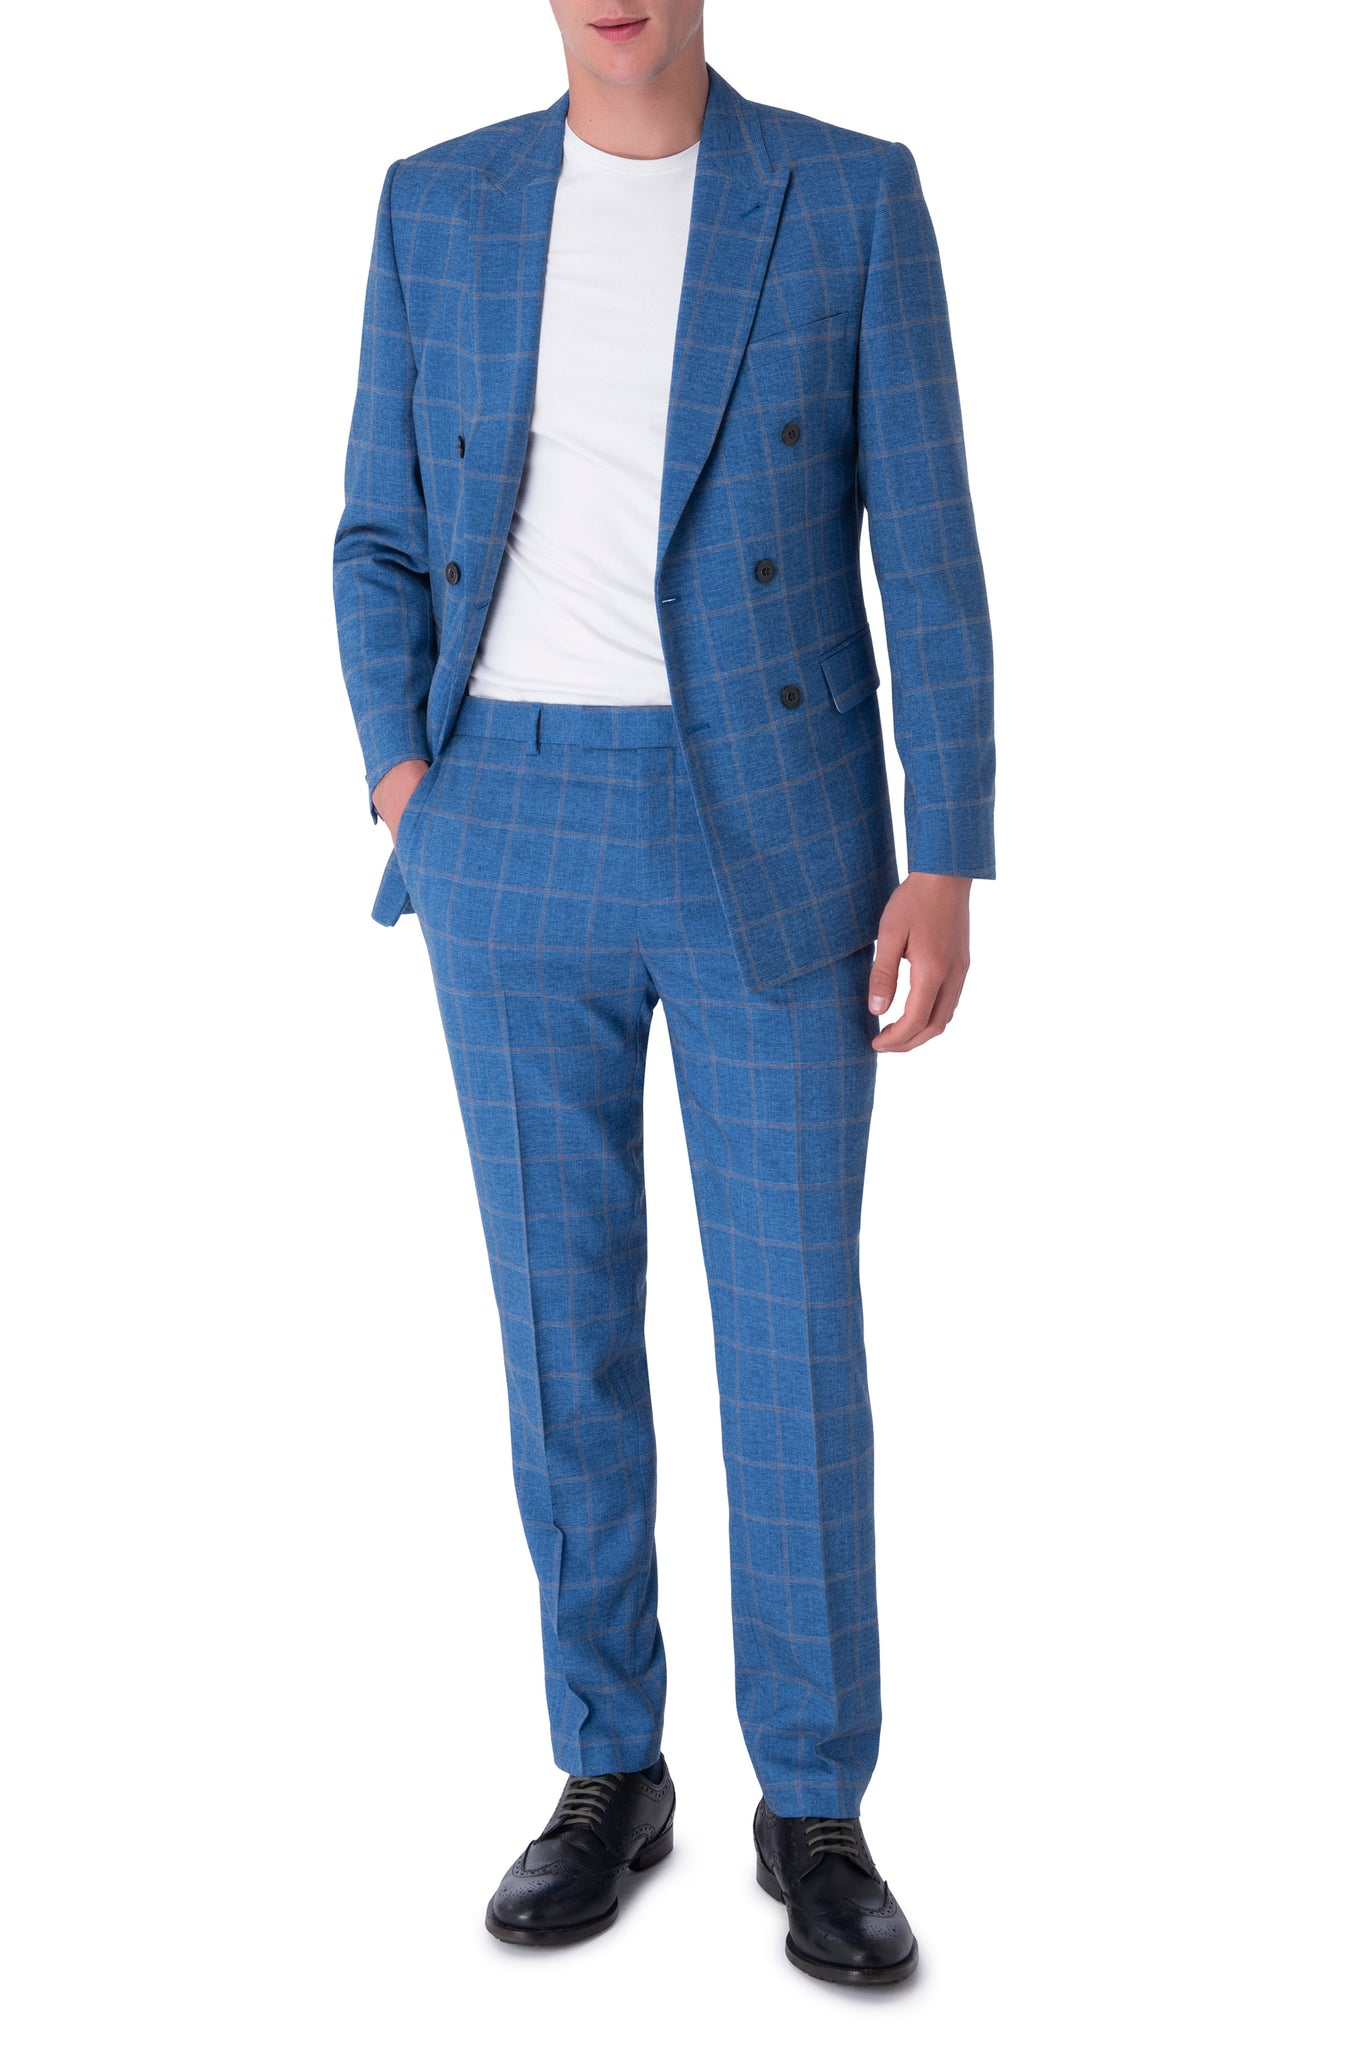 WILLIAM Blue Check Double Breasted Suit